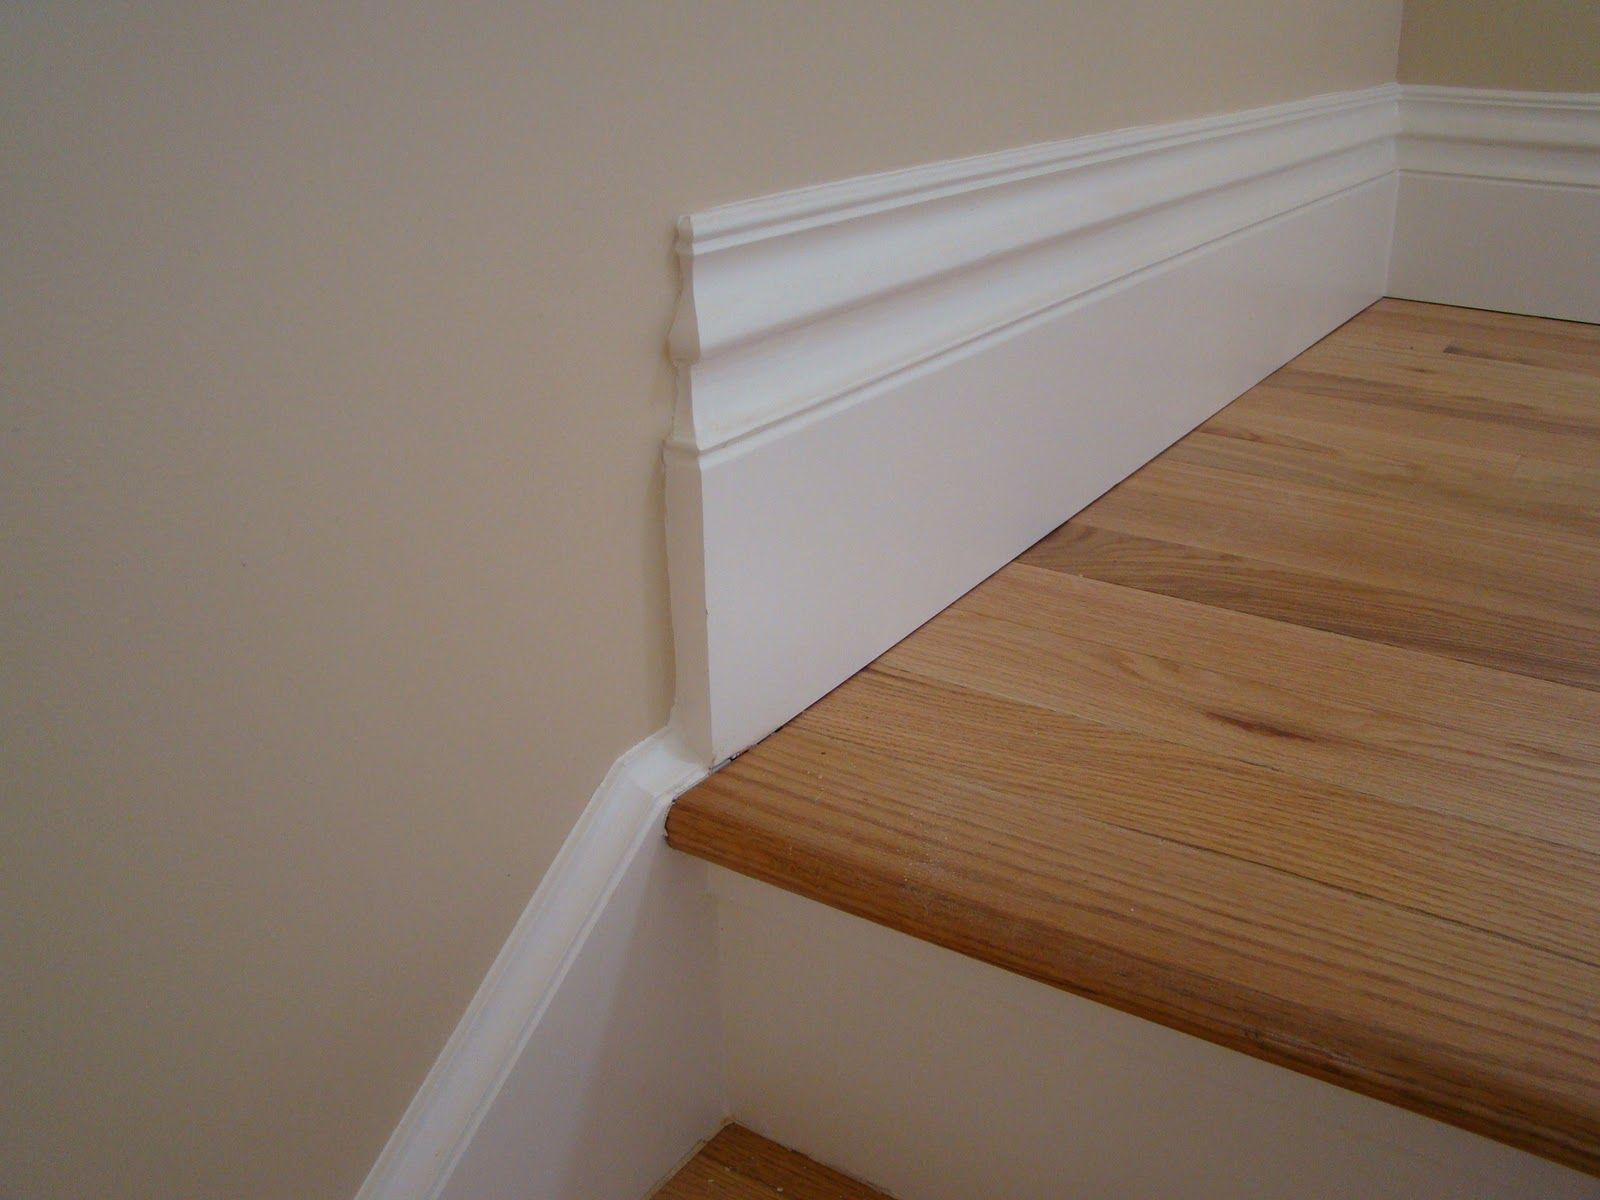 How to cut base molding around wall vent - Baseboards And Trim Google Search